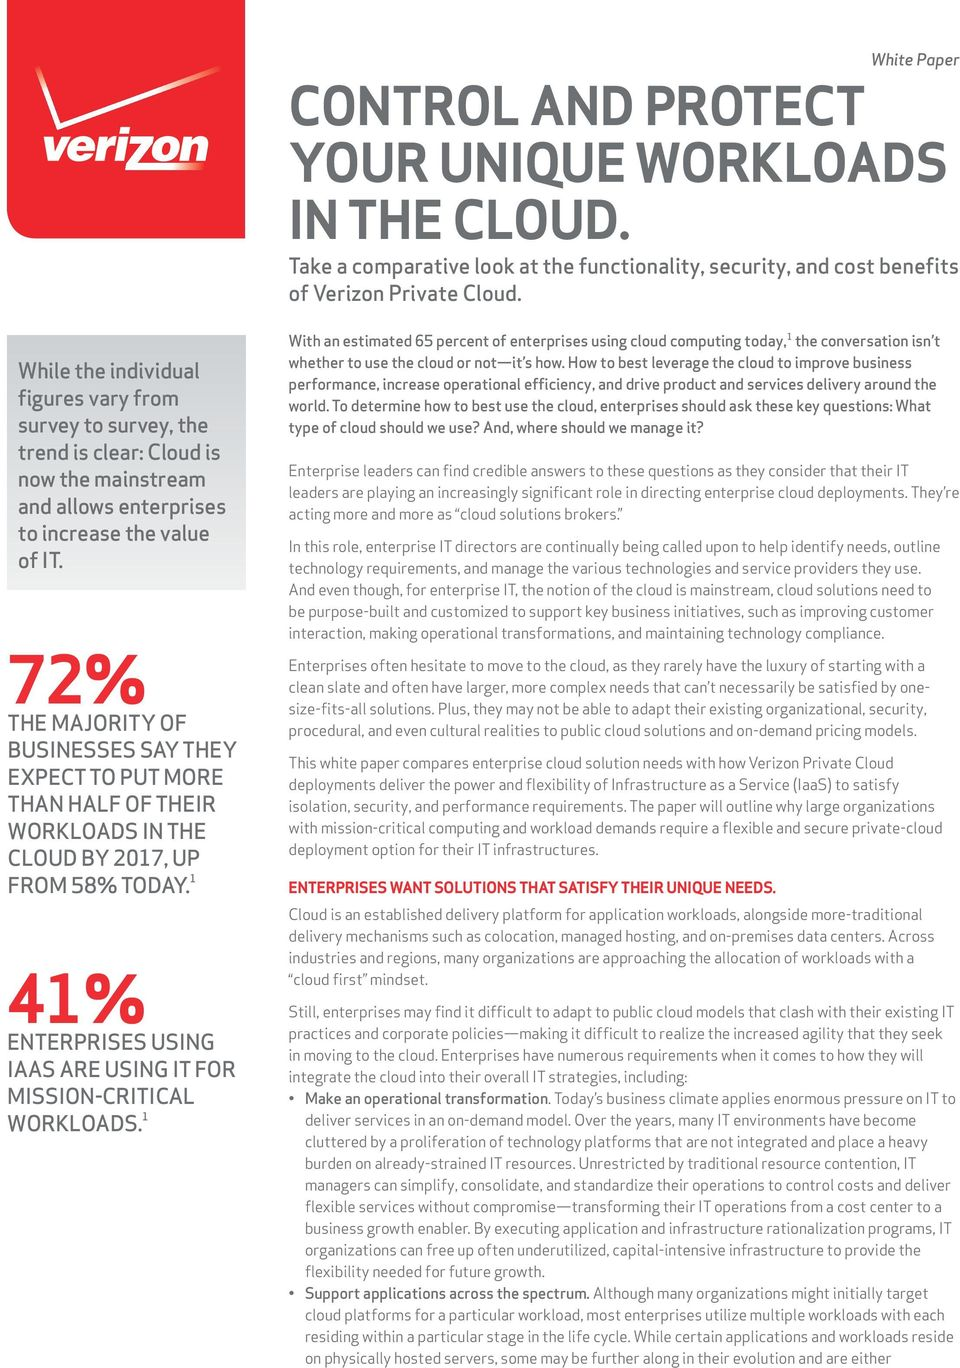 72% THE MAJORITY OF BUSINESSES SAY THEY EXPECT TO PUT MORE THAN HALF OF THEIR WORKLOADS IN THE CLOUD BY 2017, UP FROM 58% TODAY.